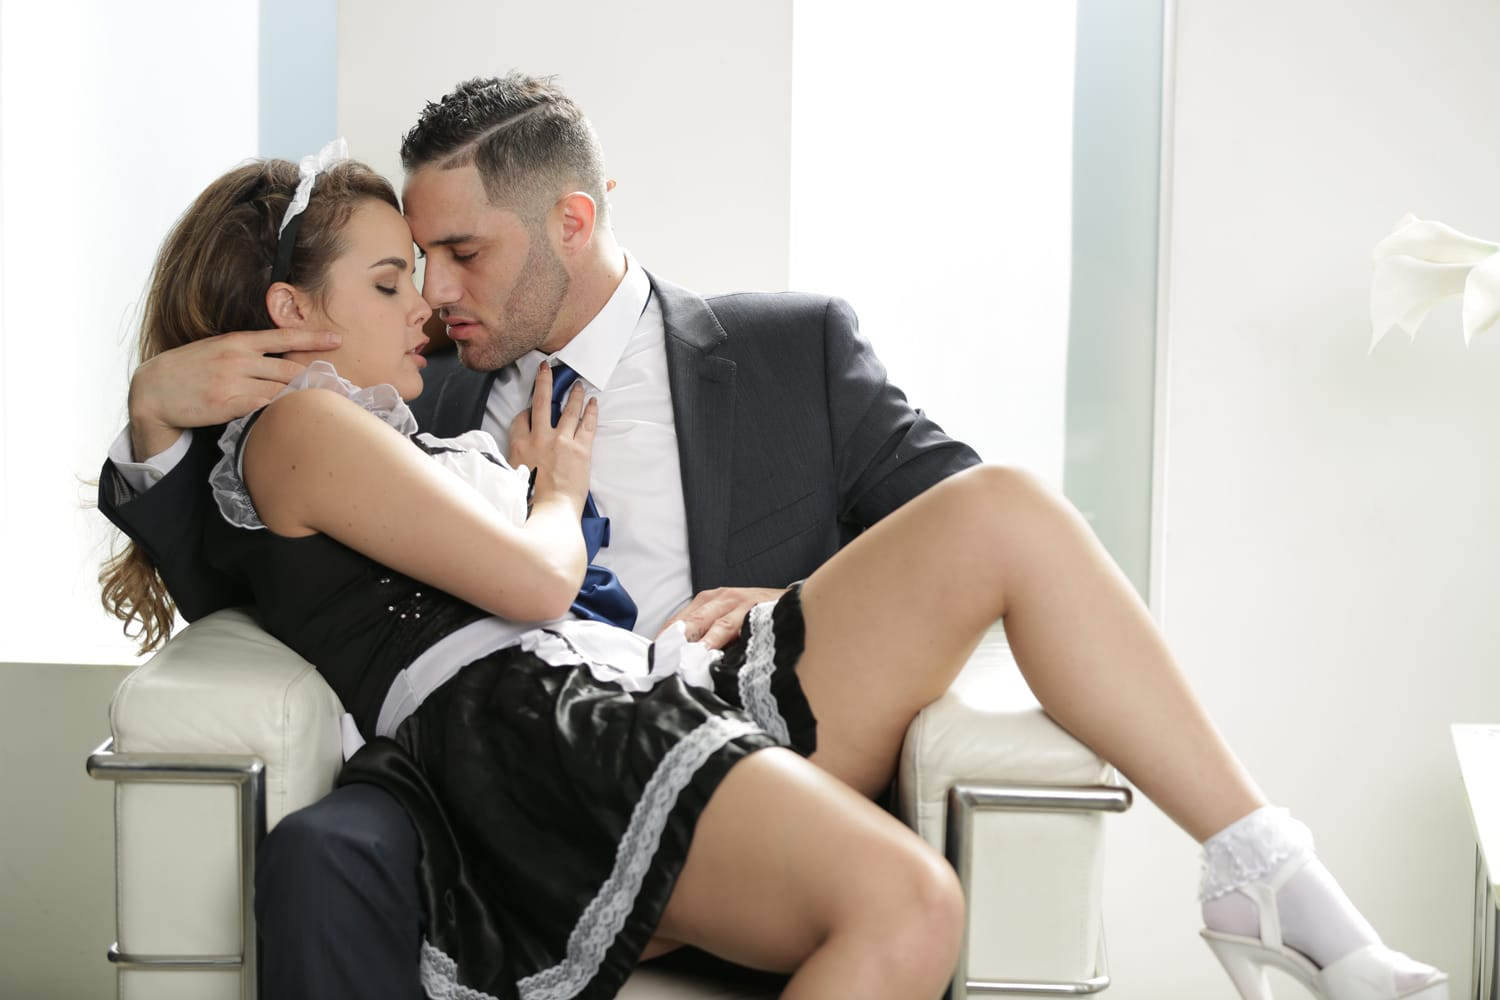 Sexual Role-play